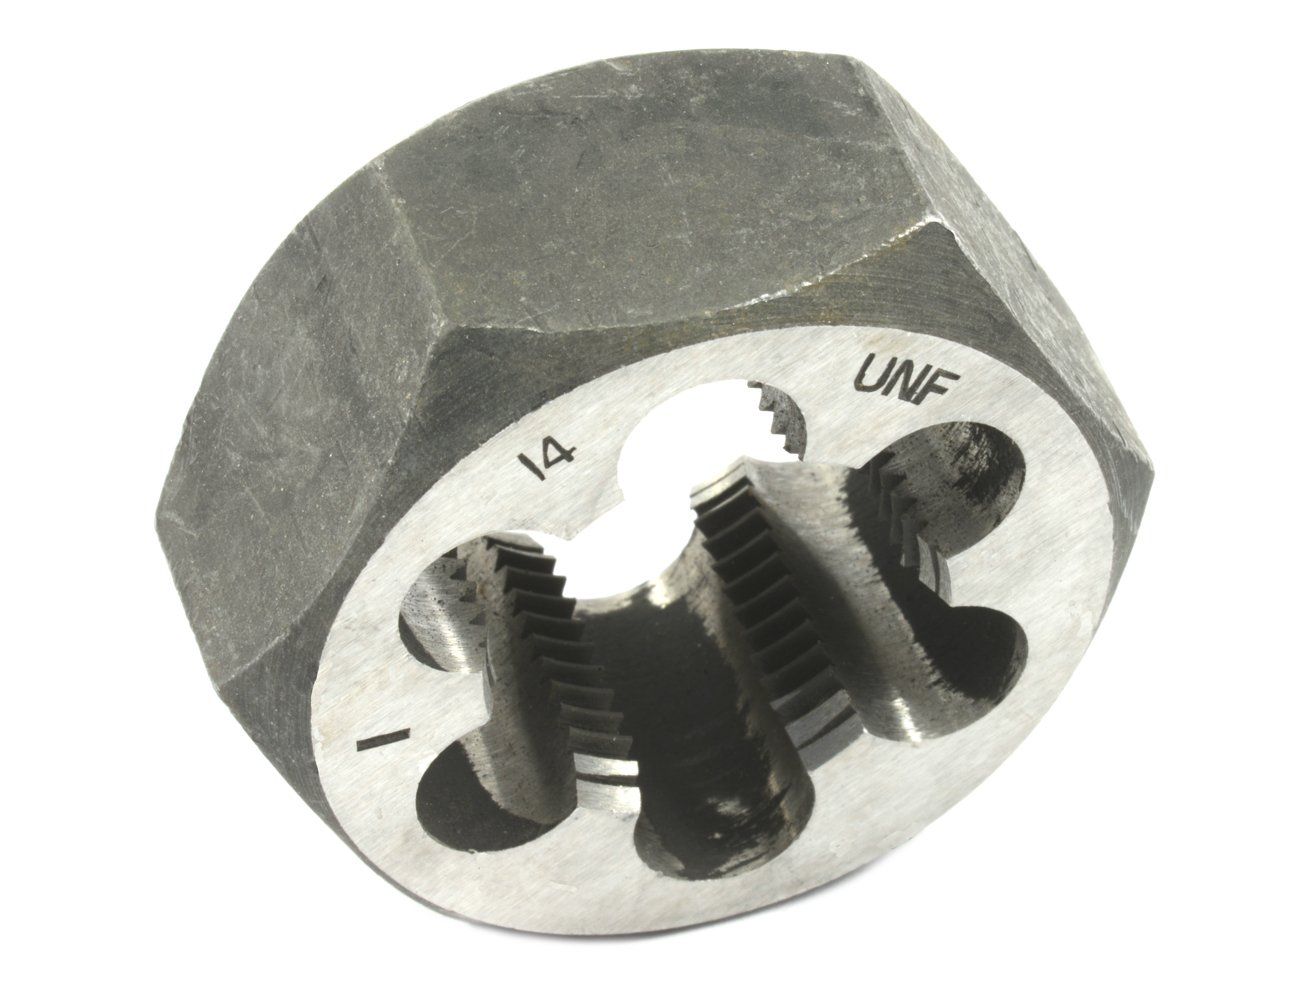 Forney 21189 Pipe Die Industrial Pro UNF Hex Re-Threading Carbon Steel, Right Hand, 1-Inch-by-14